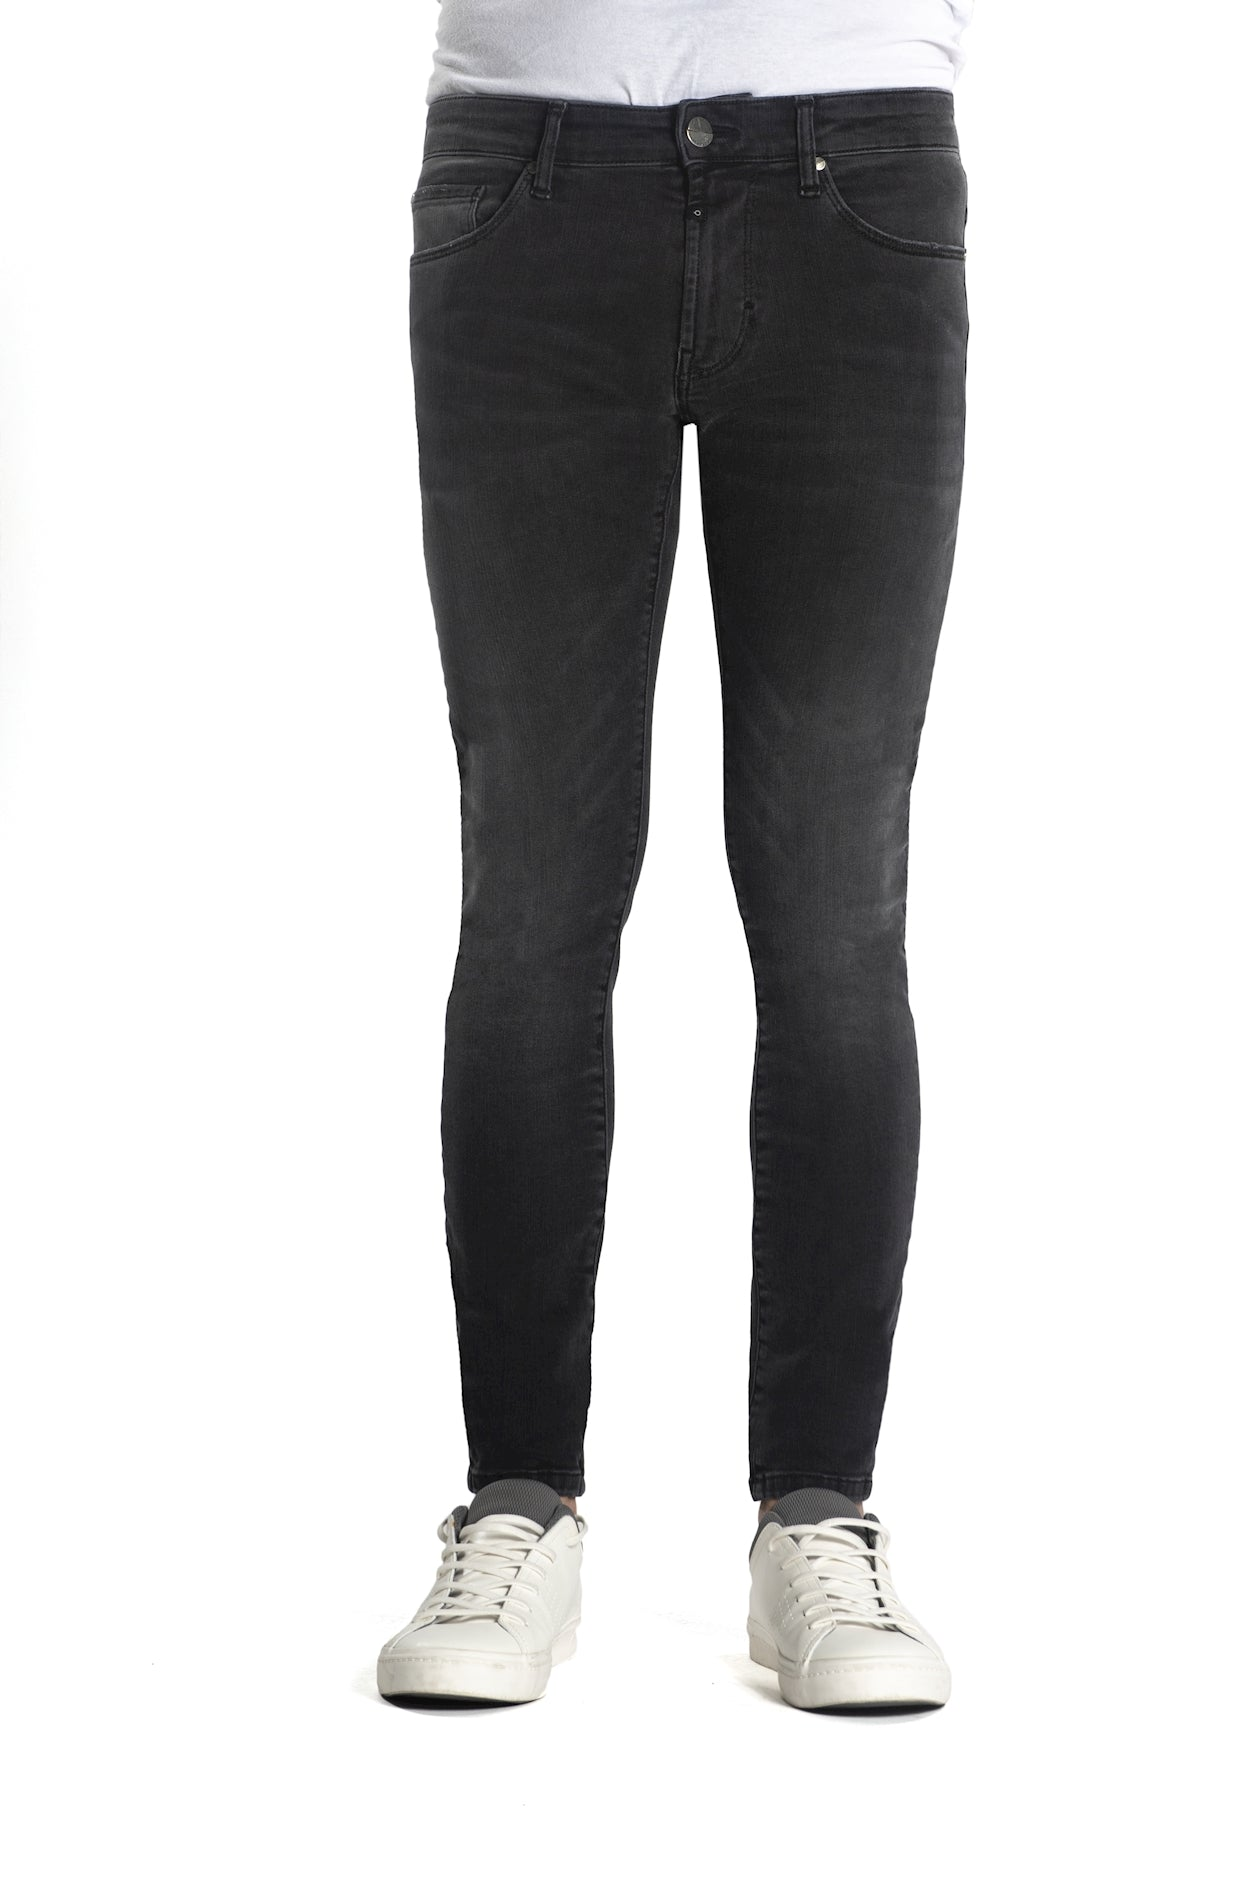 Patrick - Skinny fit Wellflex - Coal Black